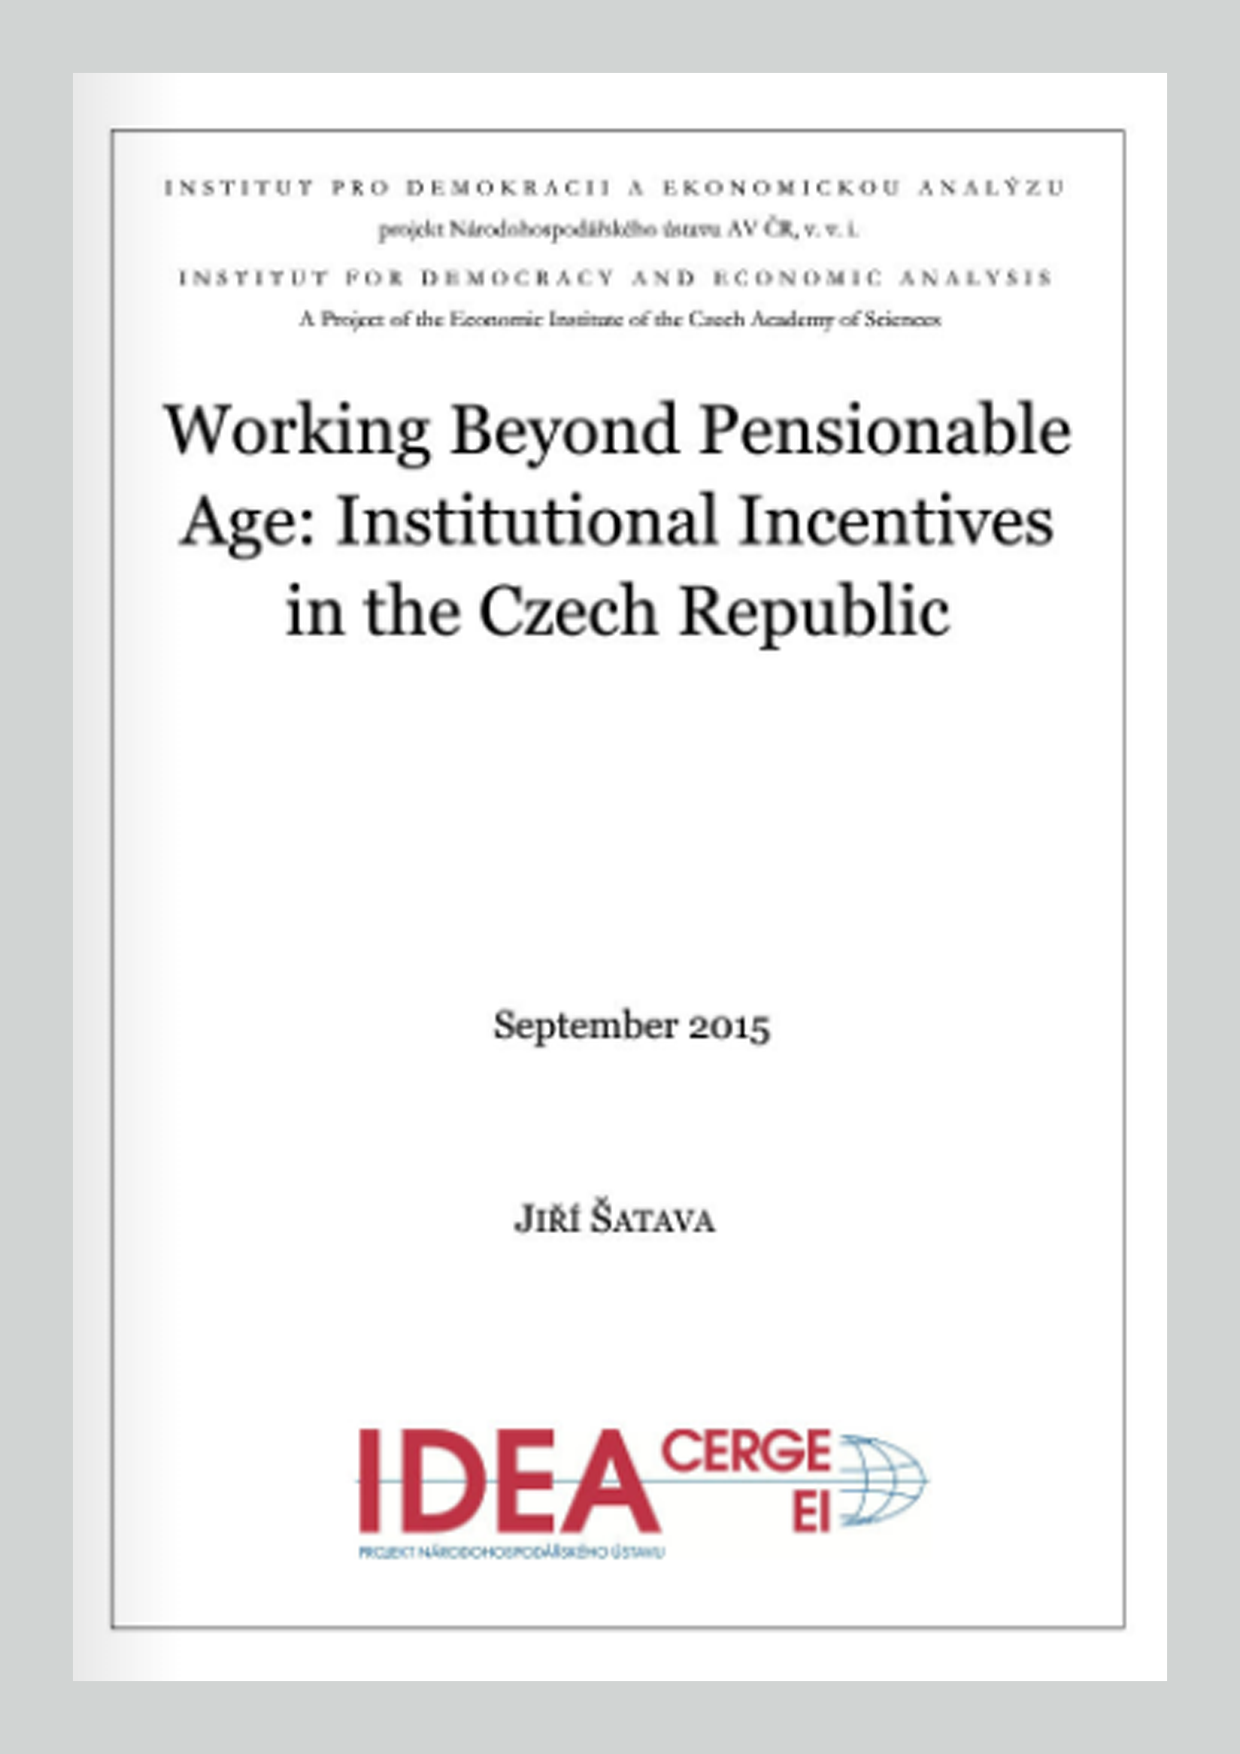 Working Beyond Pensionable Age: Institutional Incentives in the Czech Republic